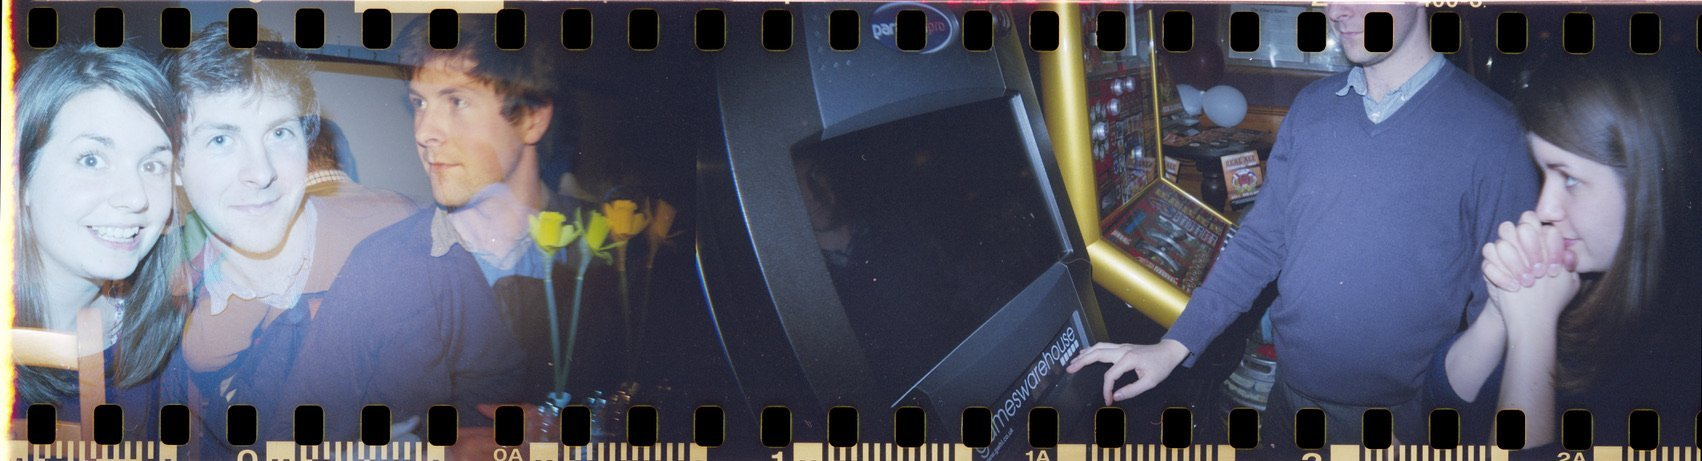 Lomography Digitaliza - 35mm Film Scanning Mask - Analogue Wonderland